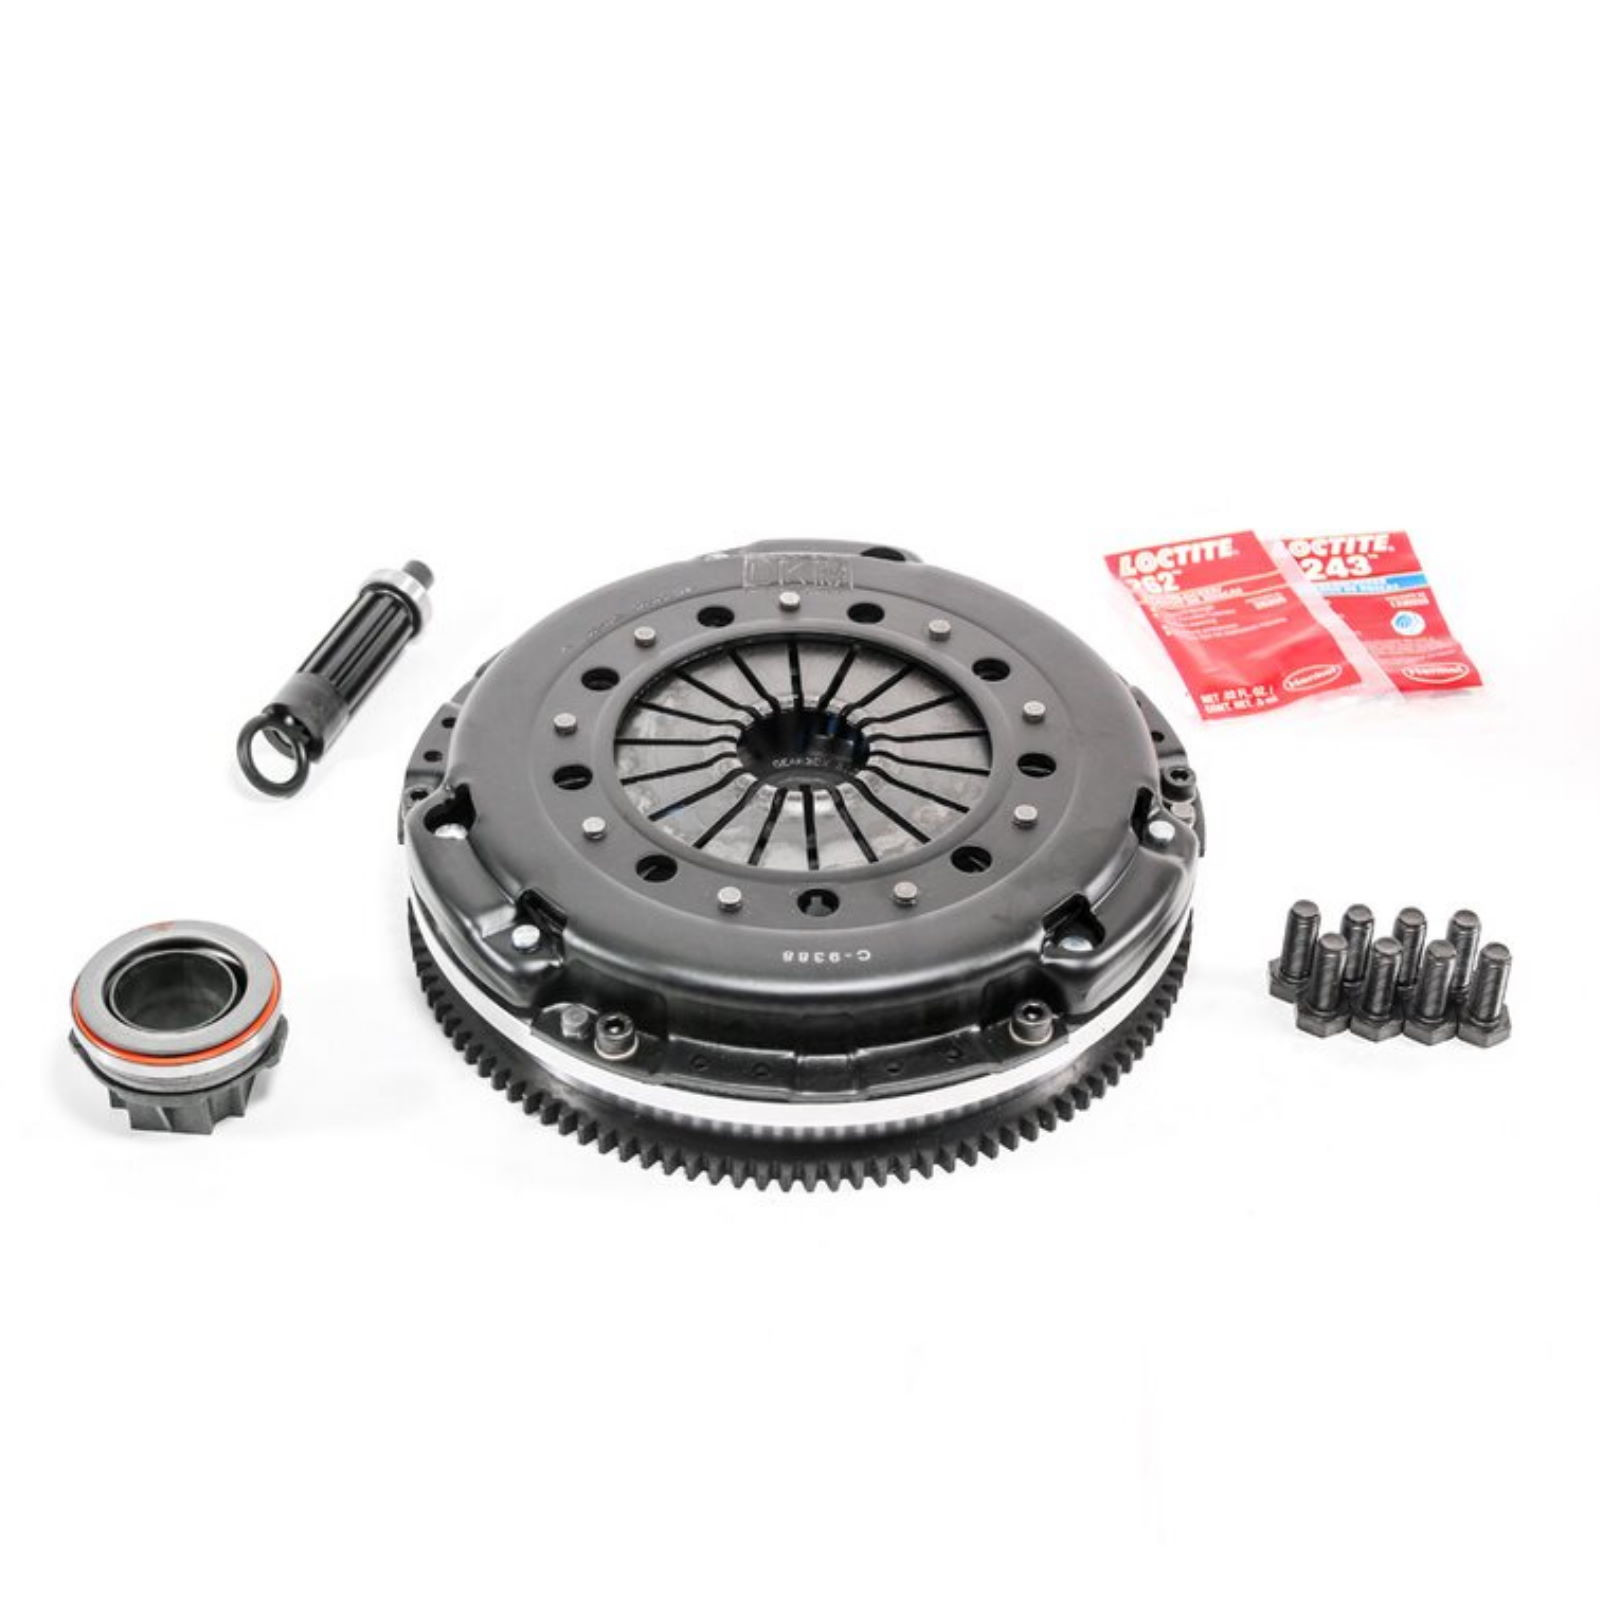 Bmw Z3 Turbo Kit: CLUTCH KIT STOCK STYLE +FLYWHEEL / BMW Z3 2.8 Roadster M52